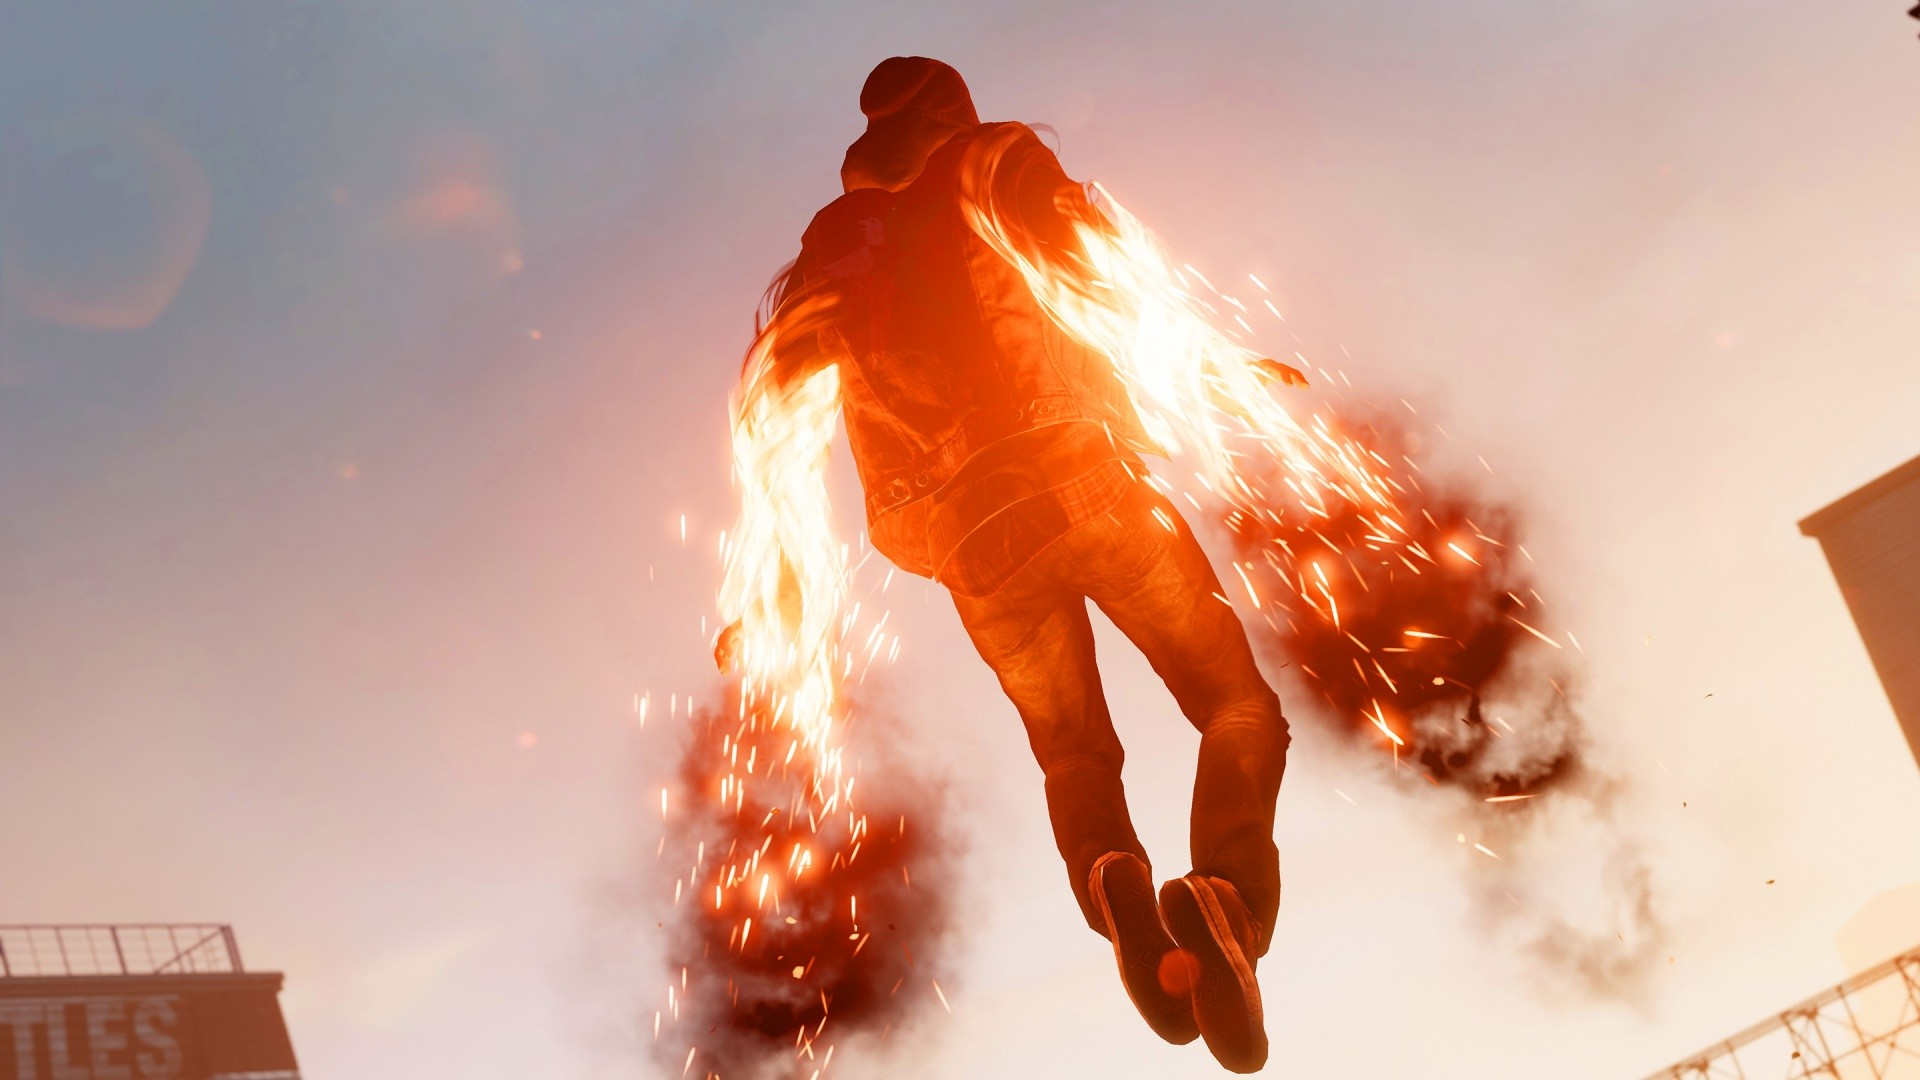 1920x1080 Infamous Second Son Wallpaper